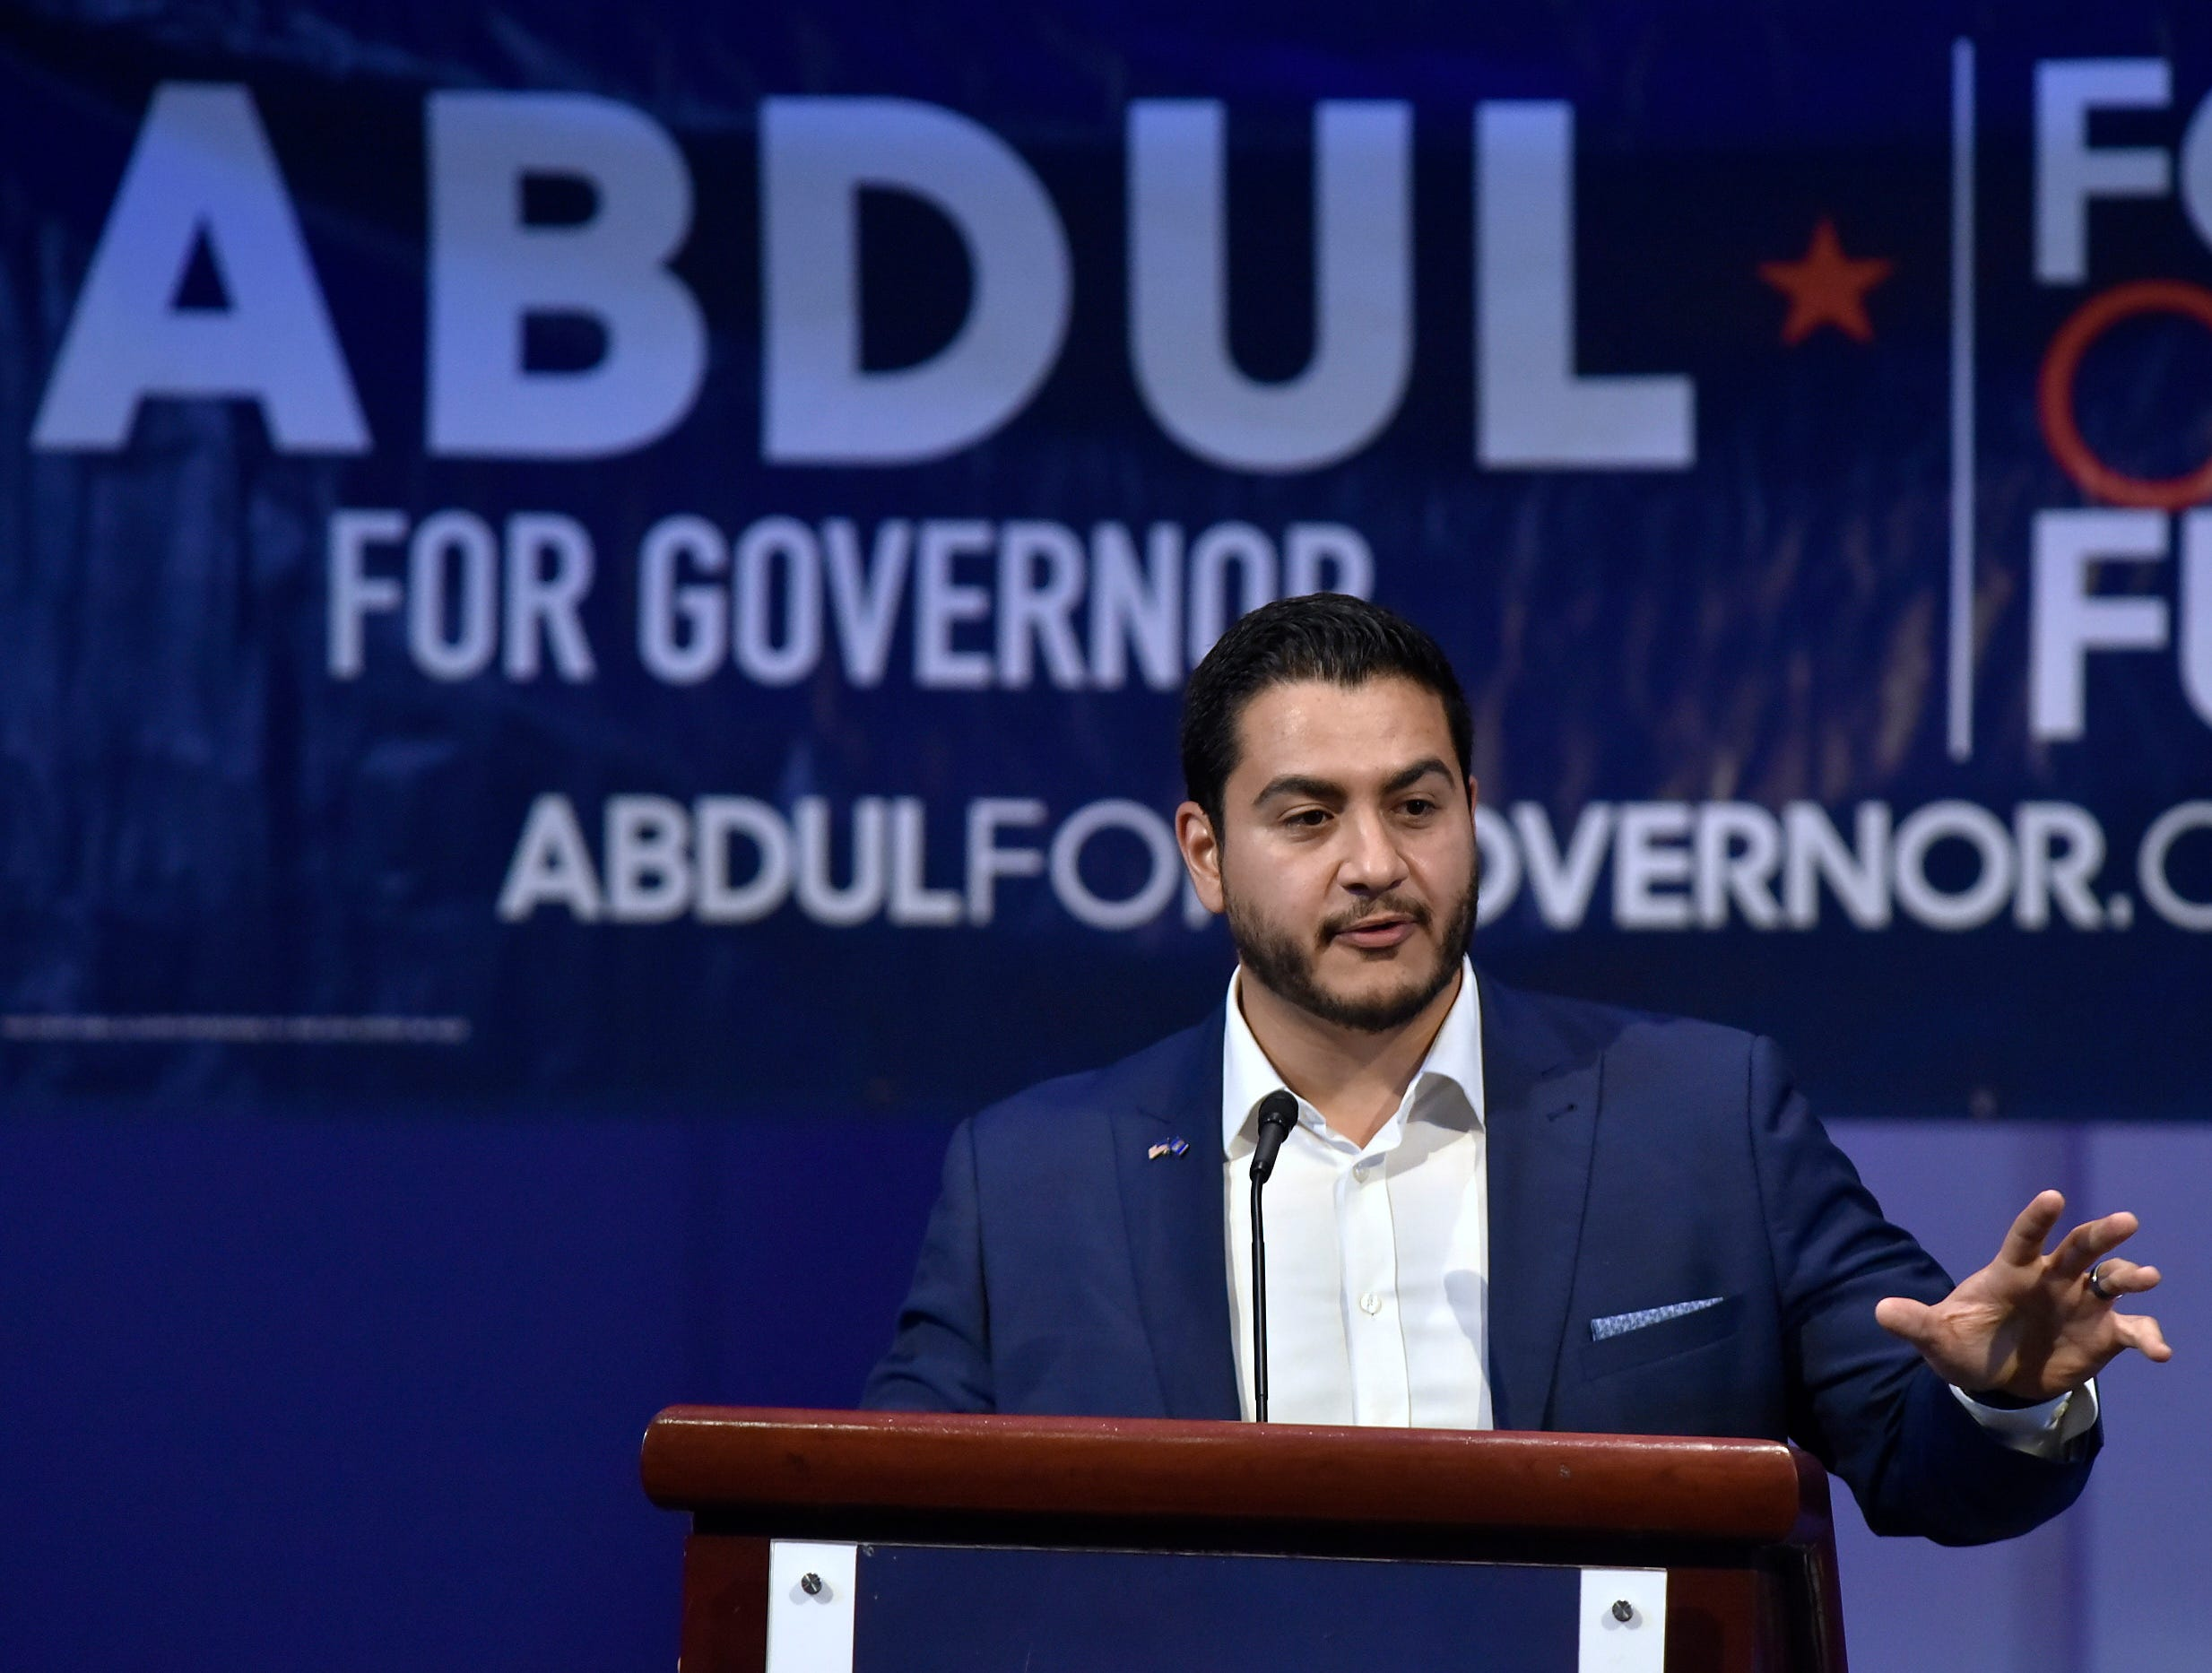 Democratic gubernatorial hopeful and former Detroit health director Dr. Abdul El-Sayed addresses his supporters at Cobo Center after the voting polls close, Tuesday night, August 7, 2018.